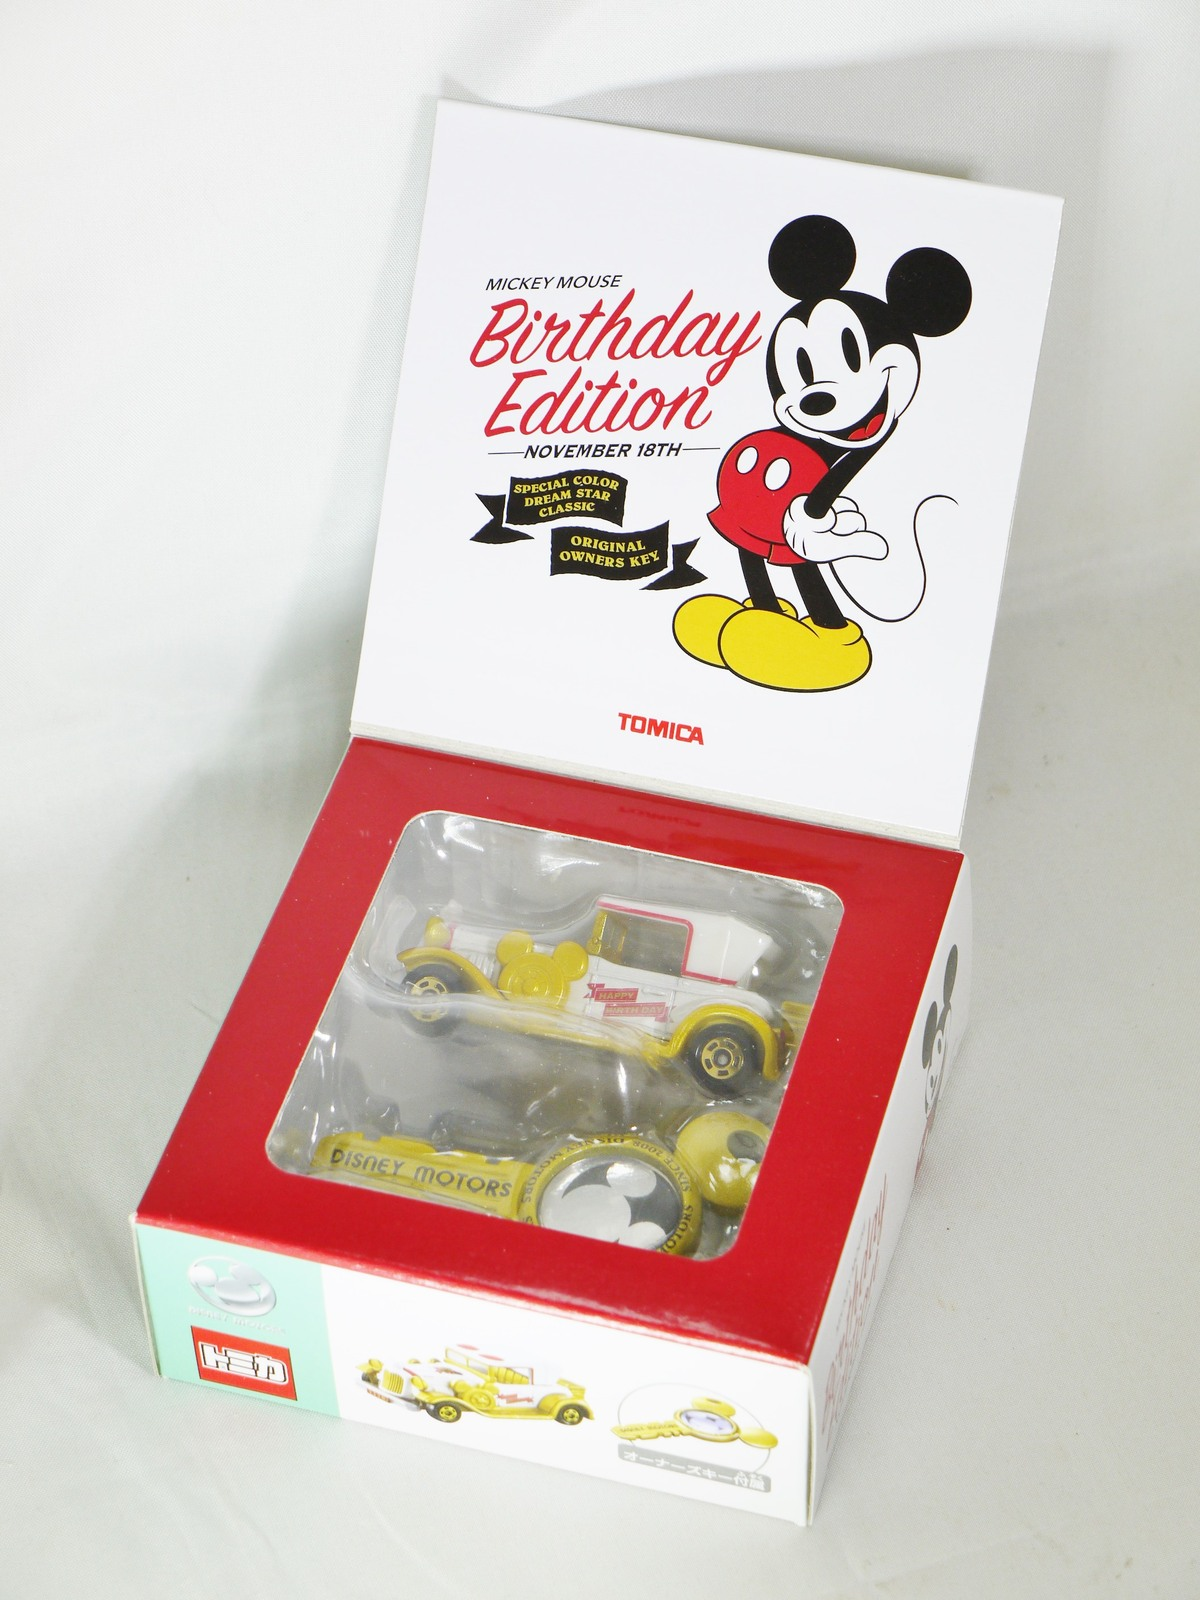 TOMICA Disney Motors Mickey Mouse Birthday Edition Nov 18th Dream Star Gold